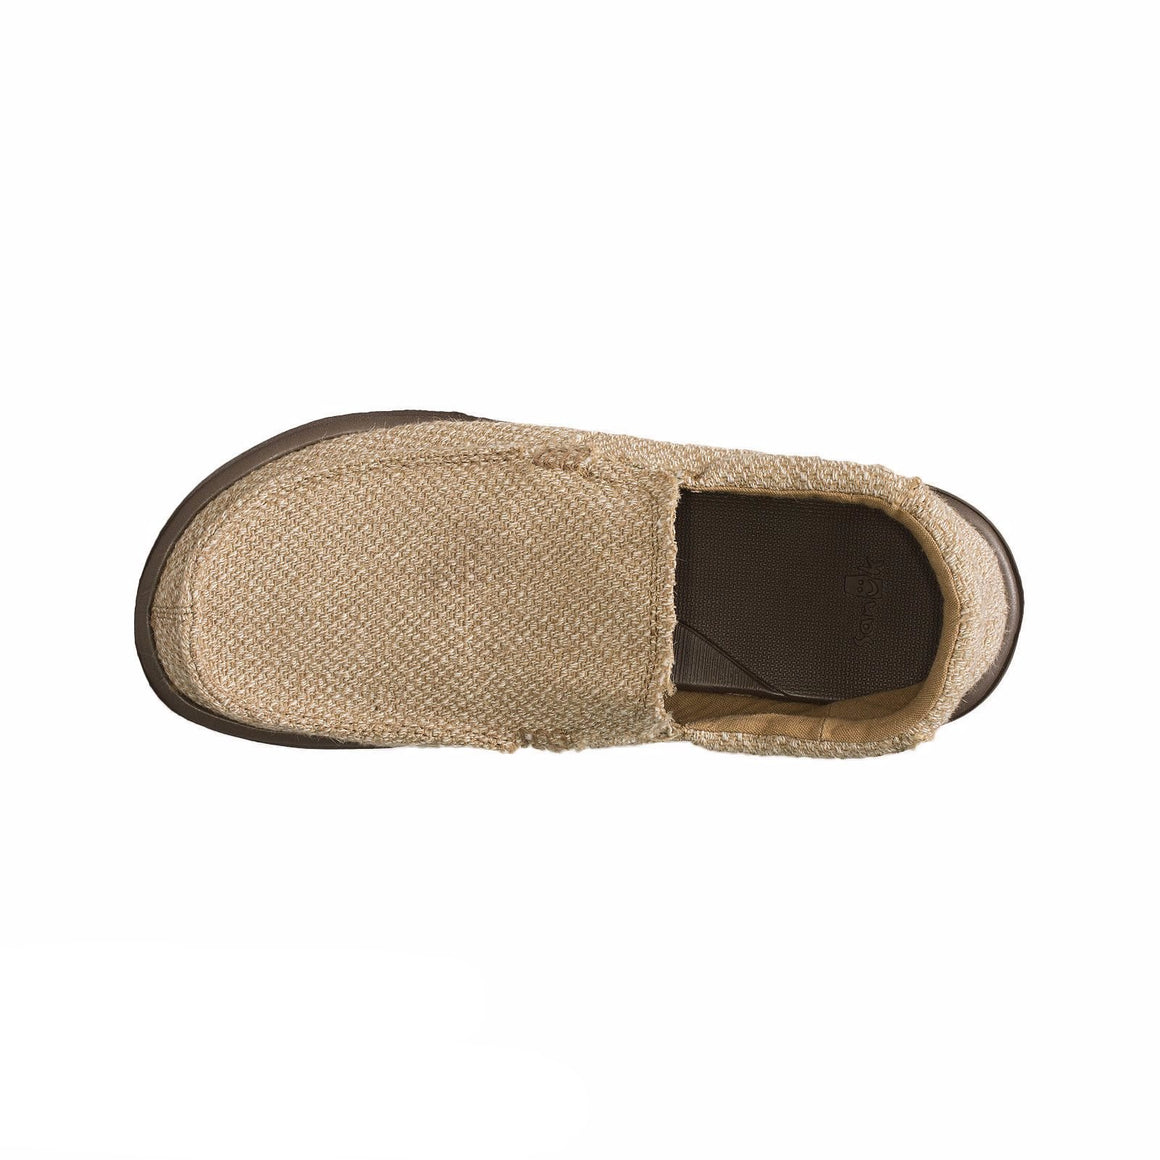 Sanuk Chibalicious Natural Hemp Shoes